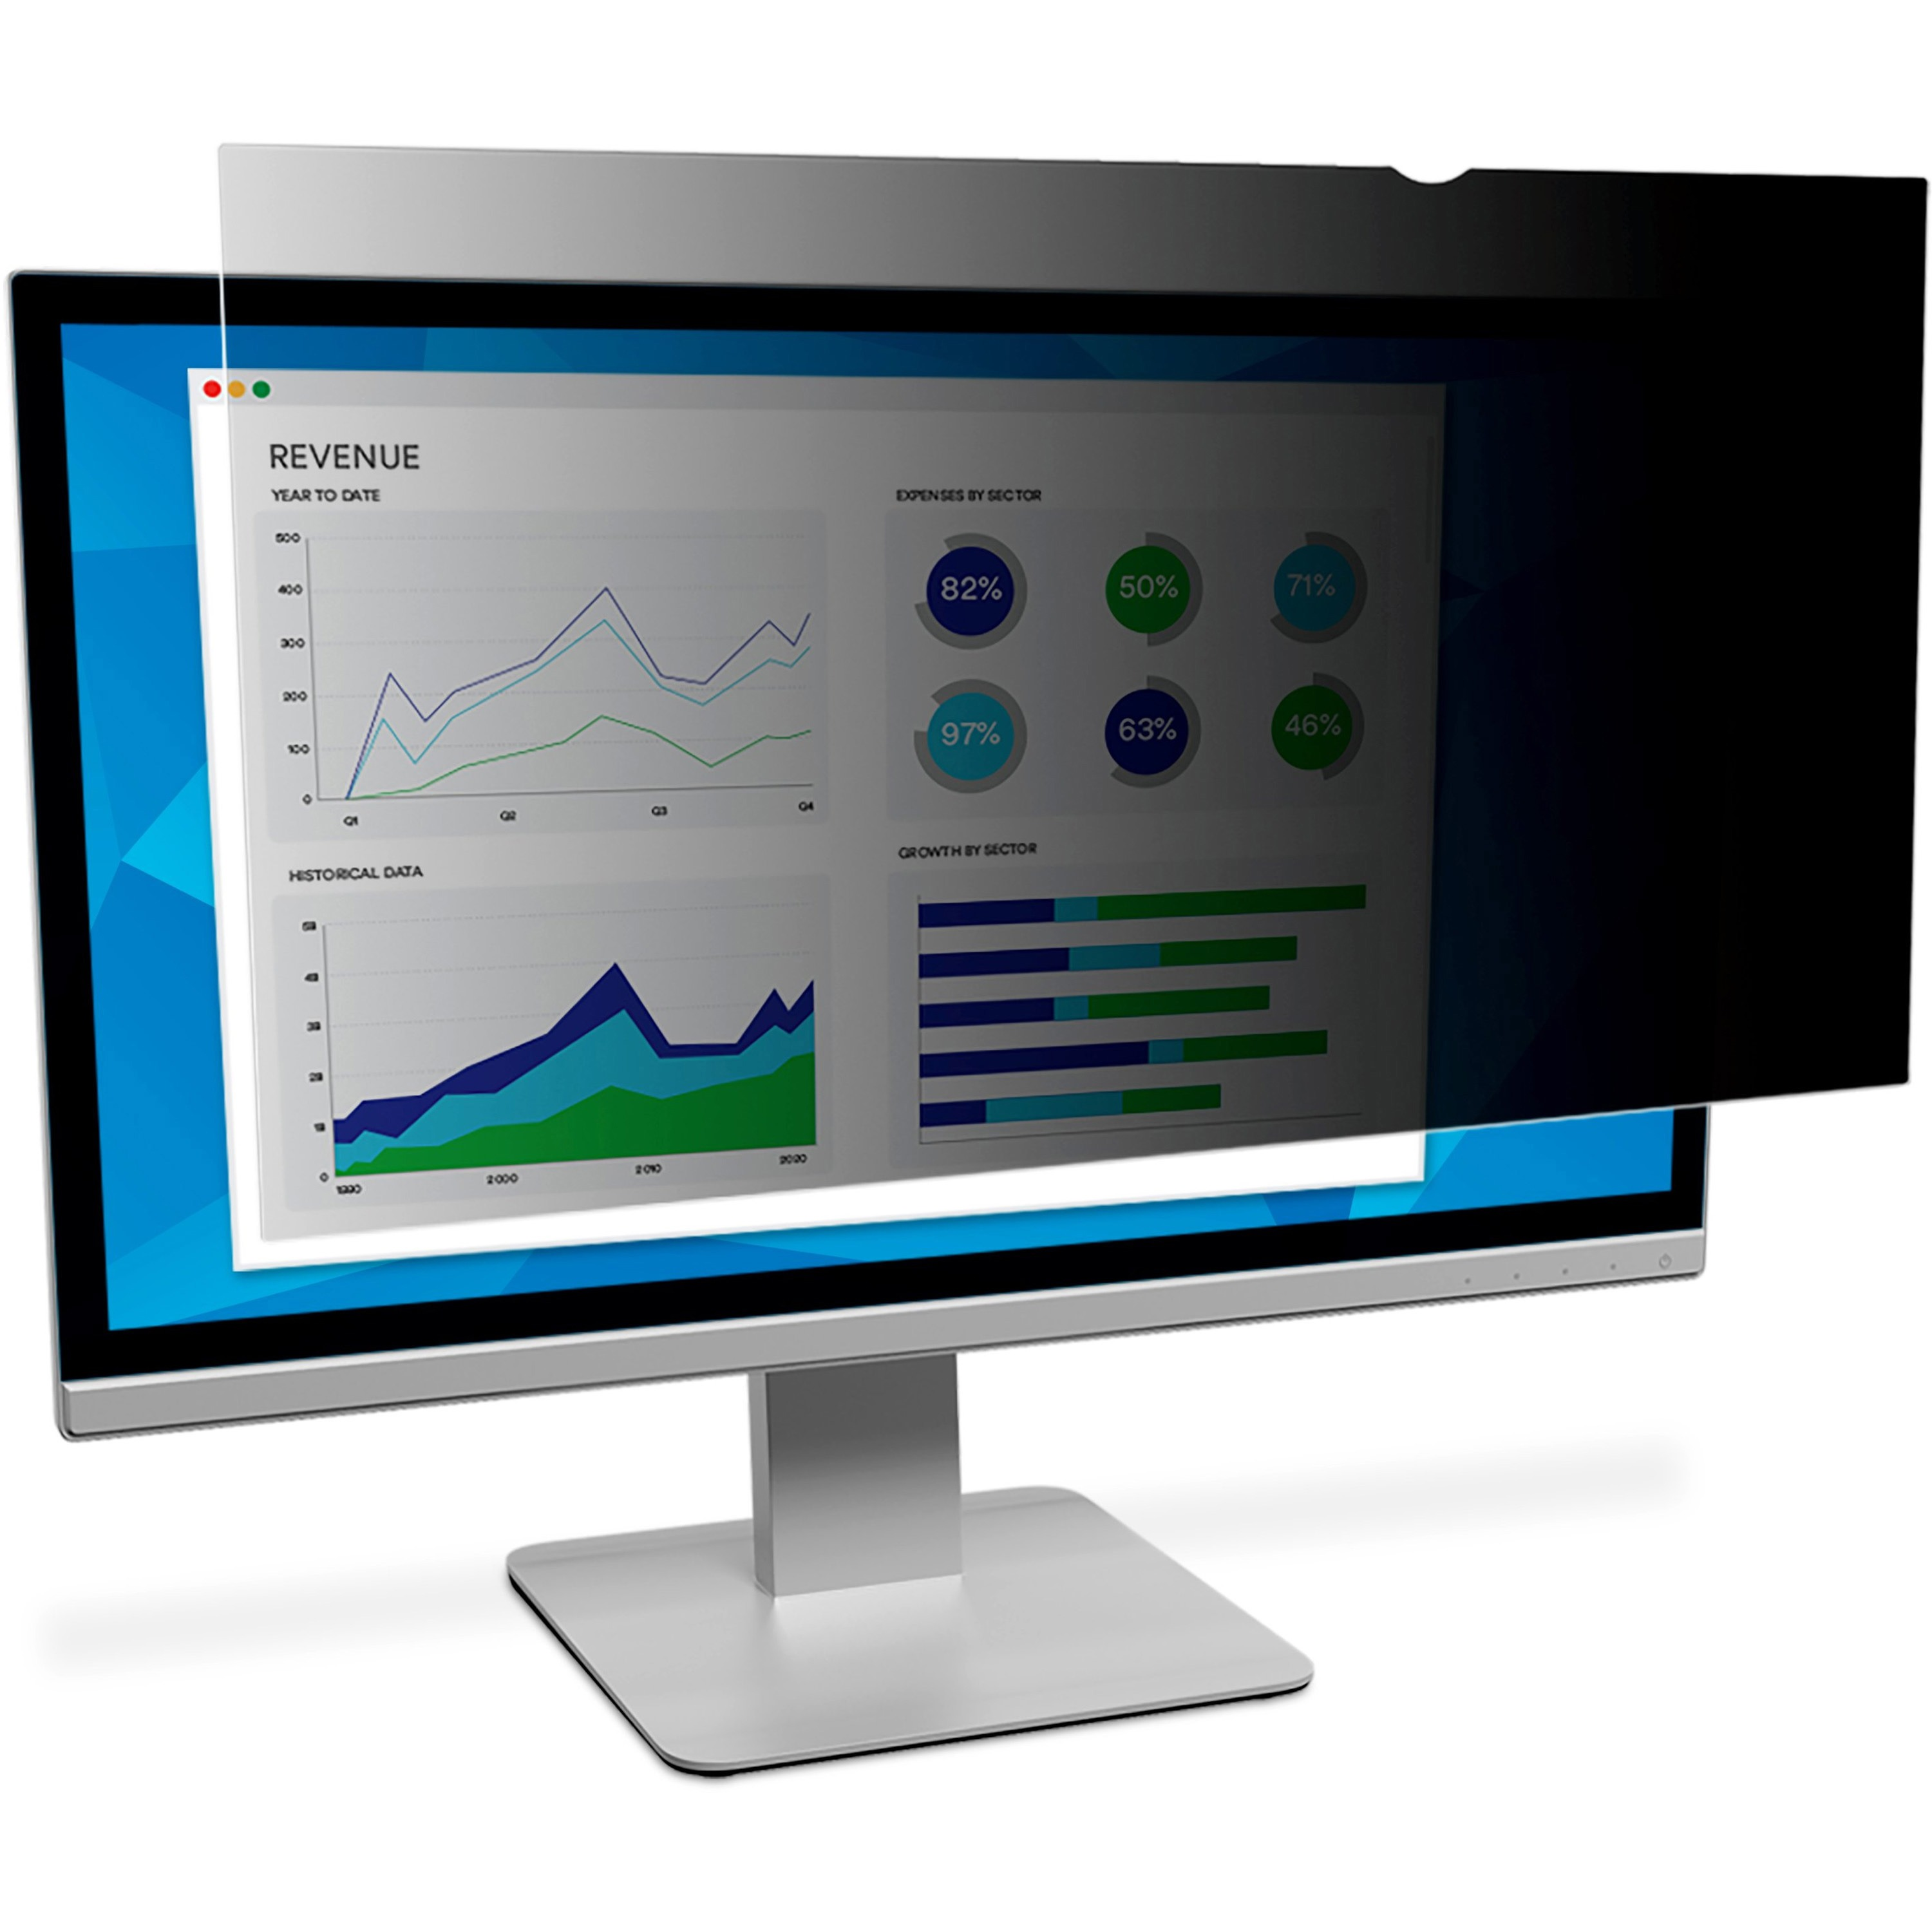 """3M PF24.0W Privacy Filter for Widescreen Desktop LCD Monitor 24.0"""" by 3M"""